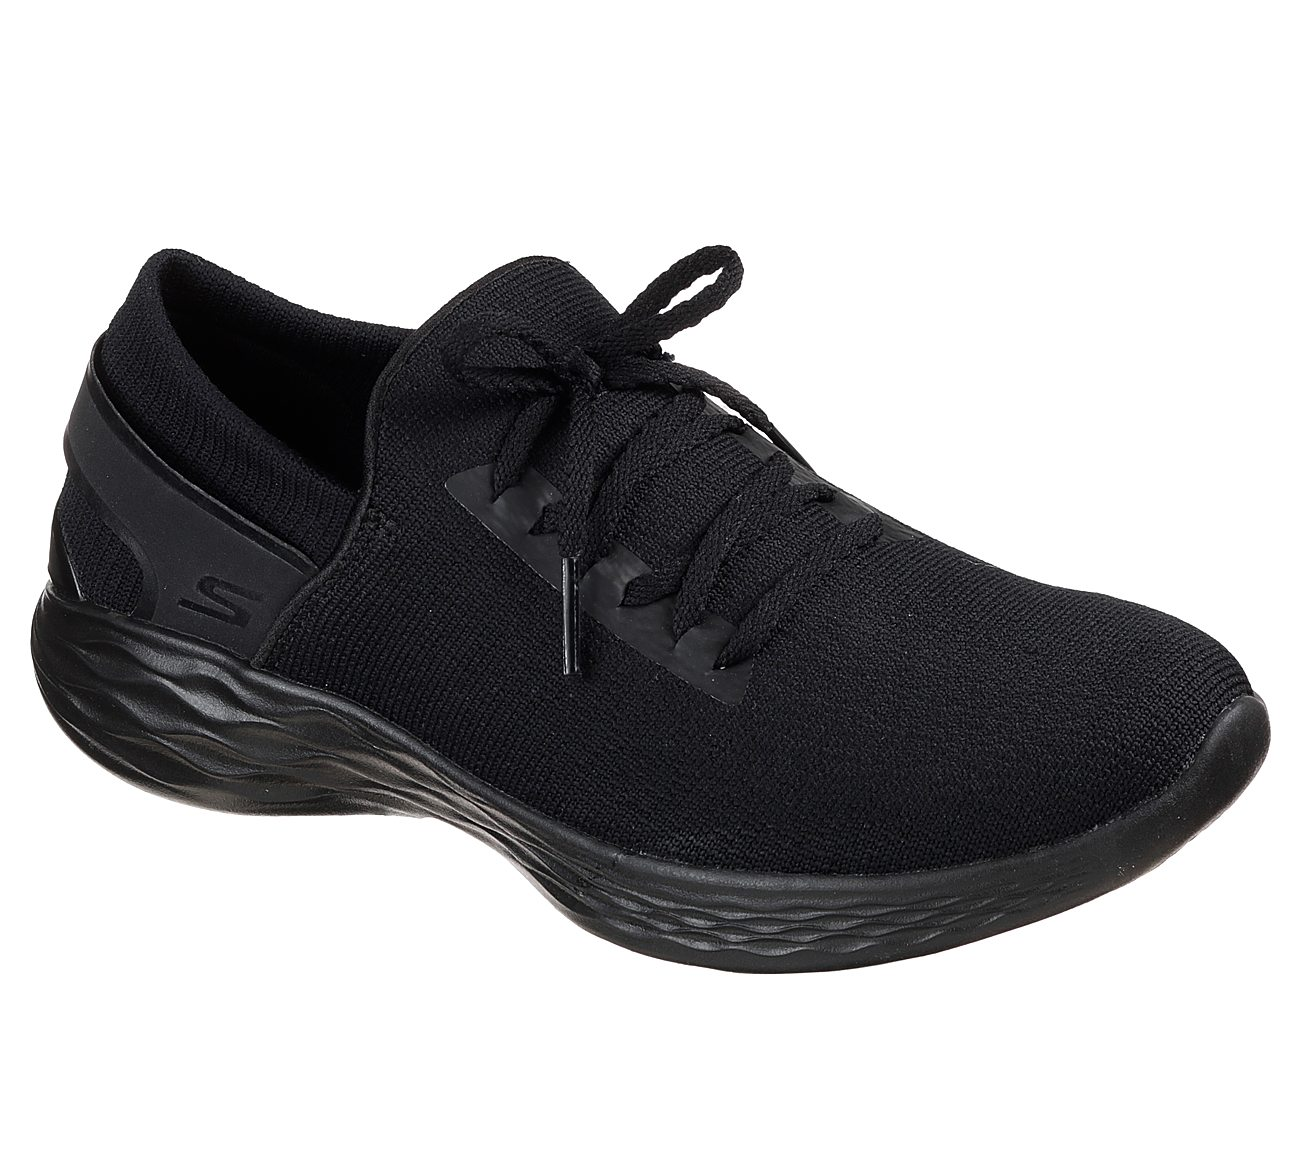 sketchers shoes hover to zoom FQEDUUN